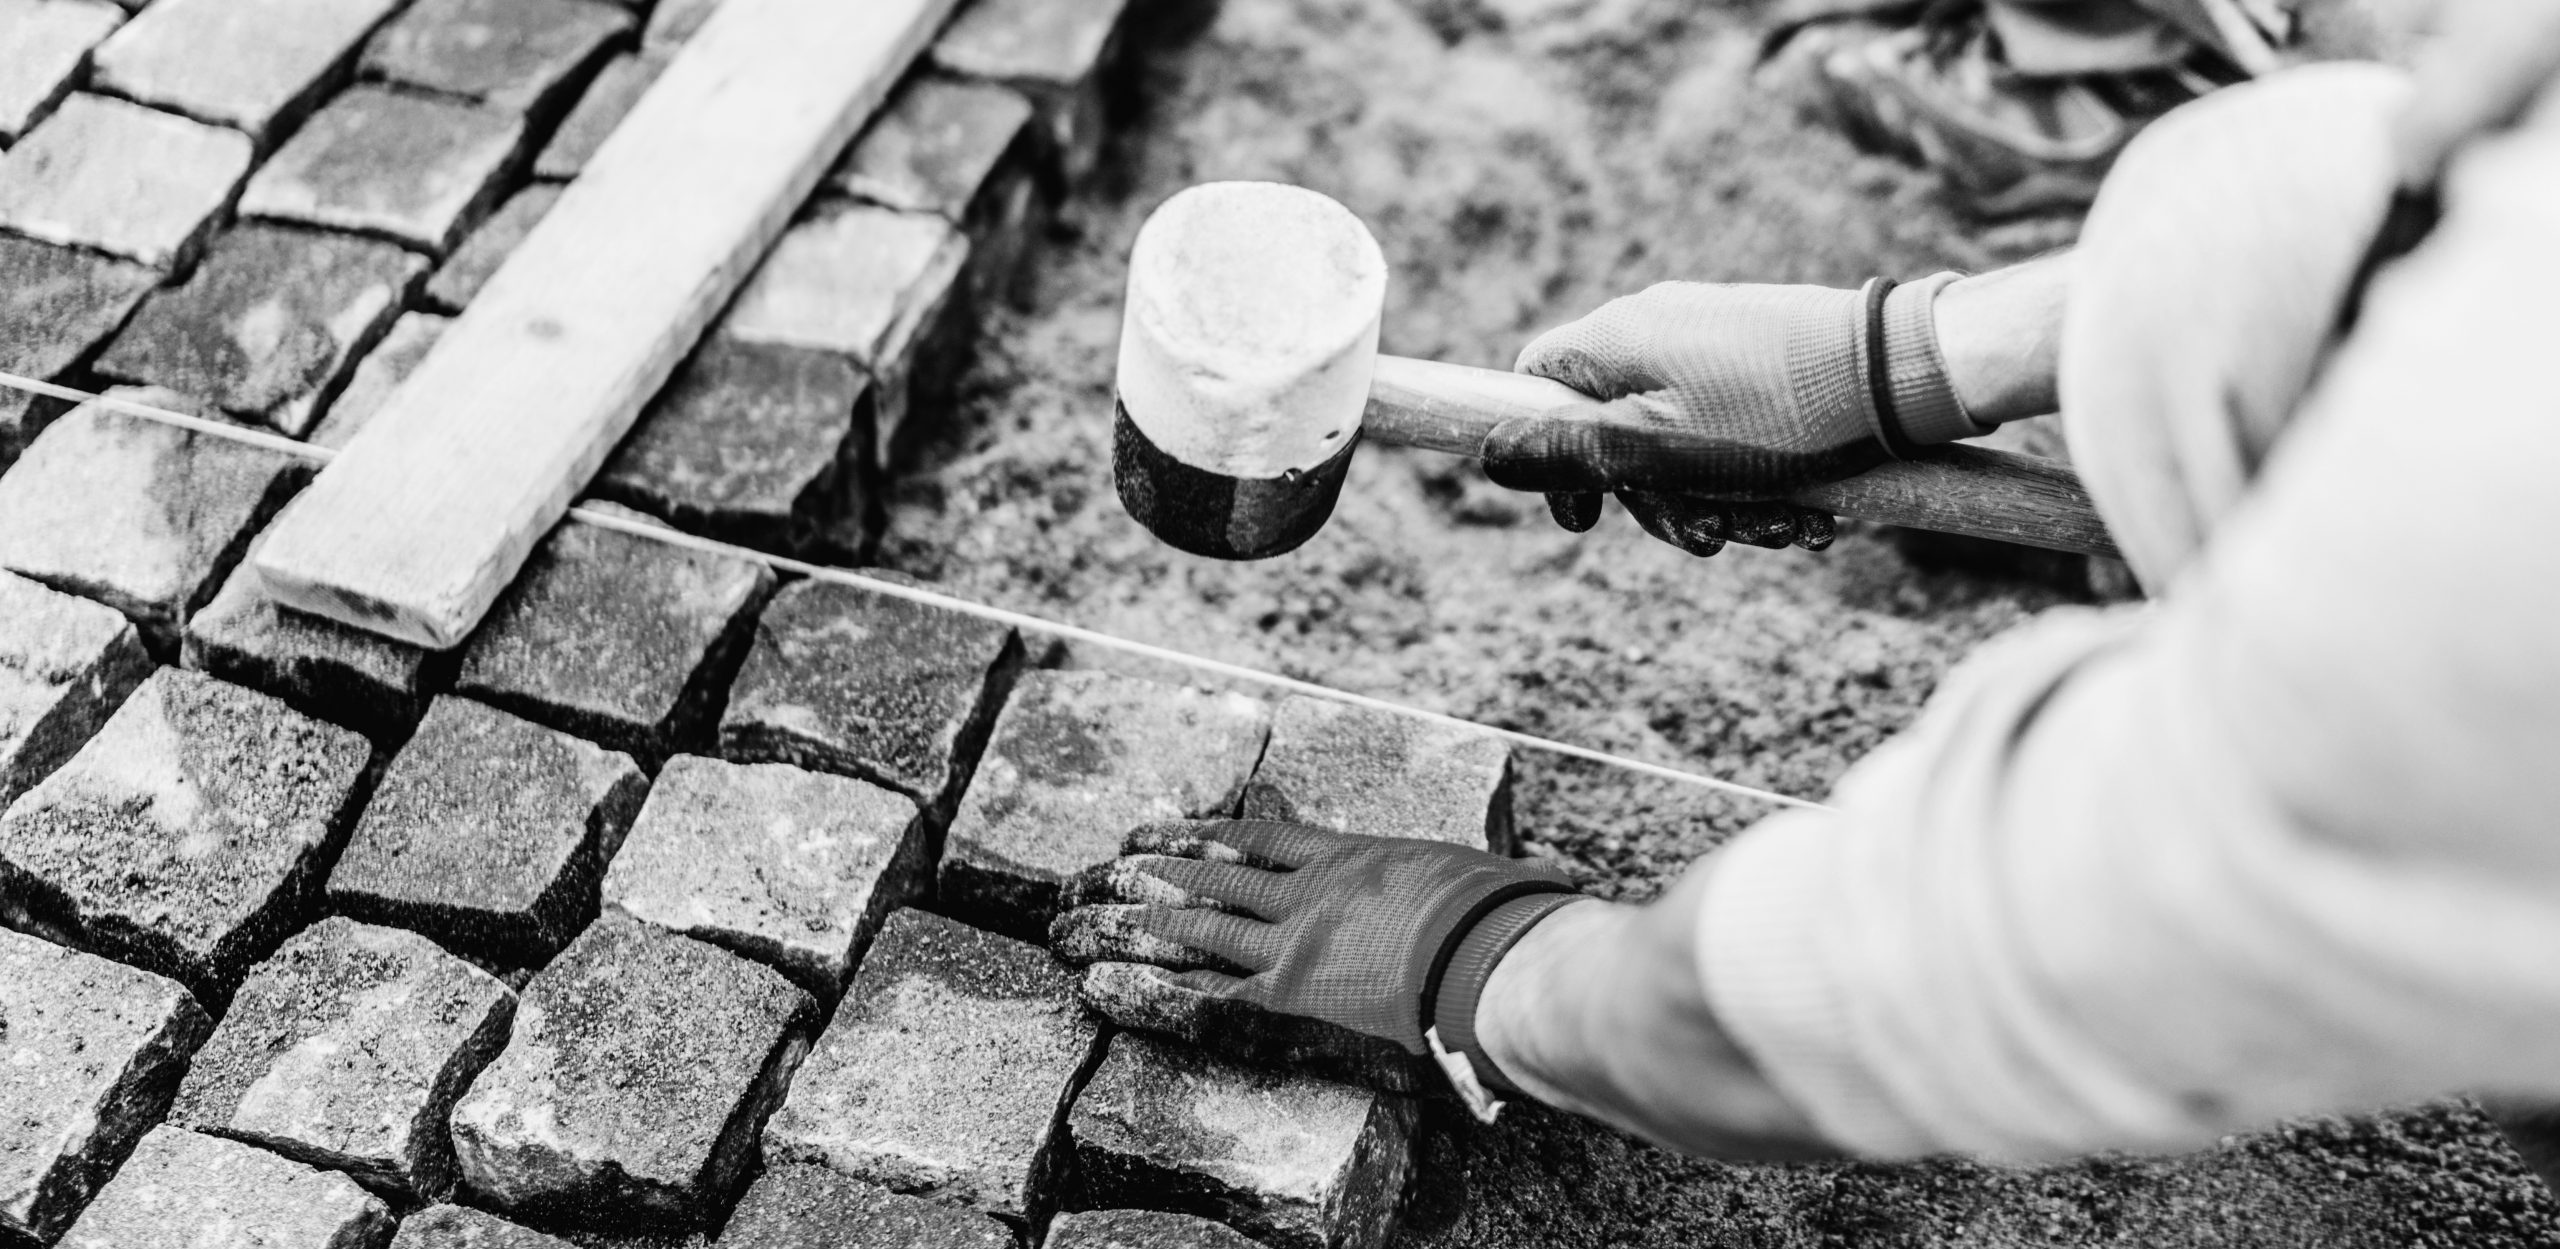 Construction worker installing stone on pavement. Details of construction site